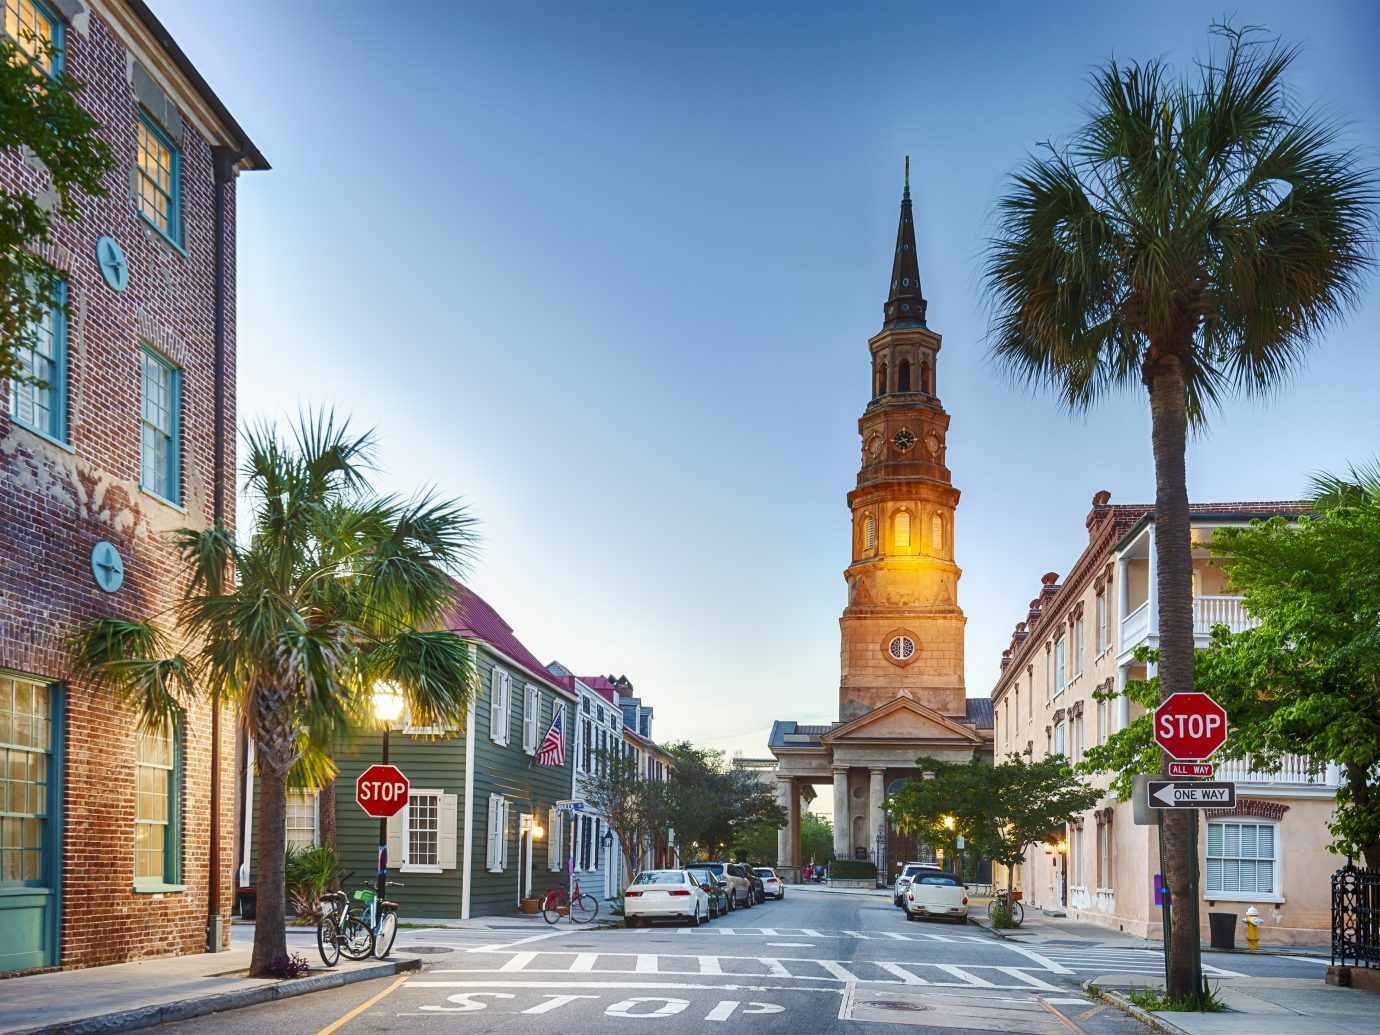 Downtown Charleston, South Carolina in the early evening.